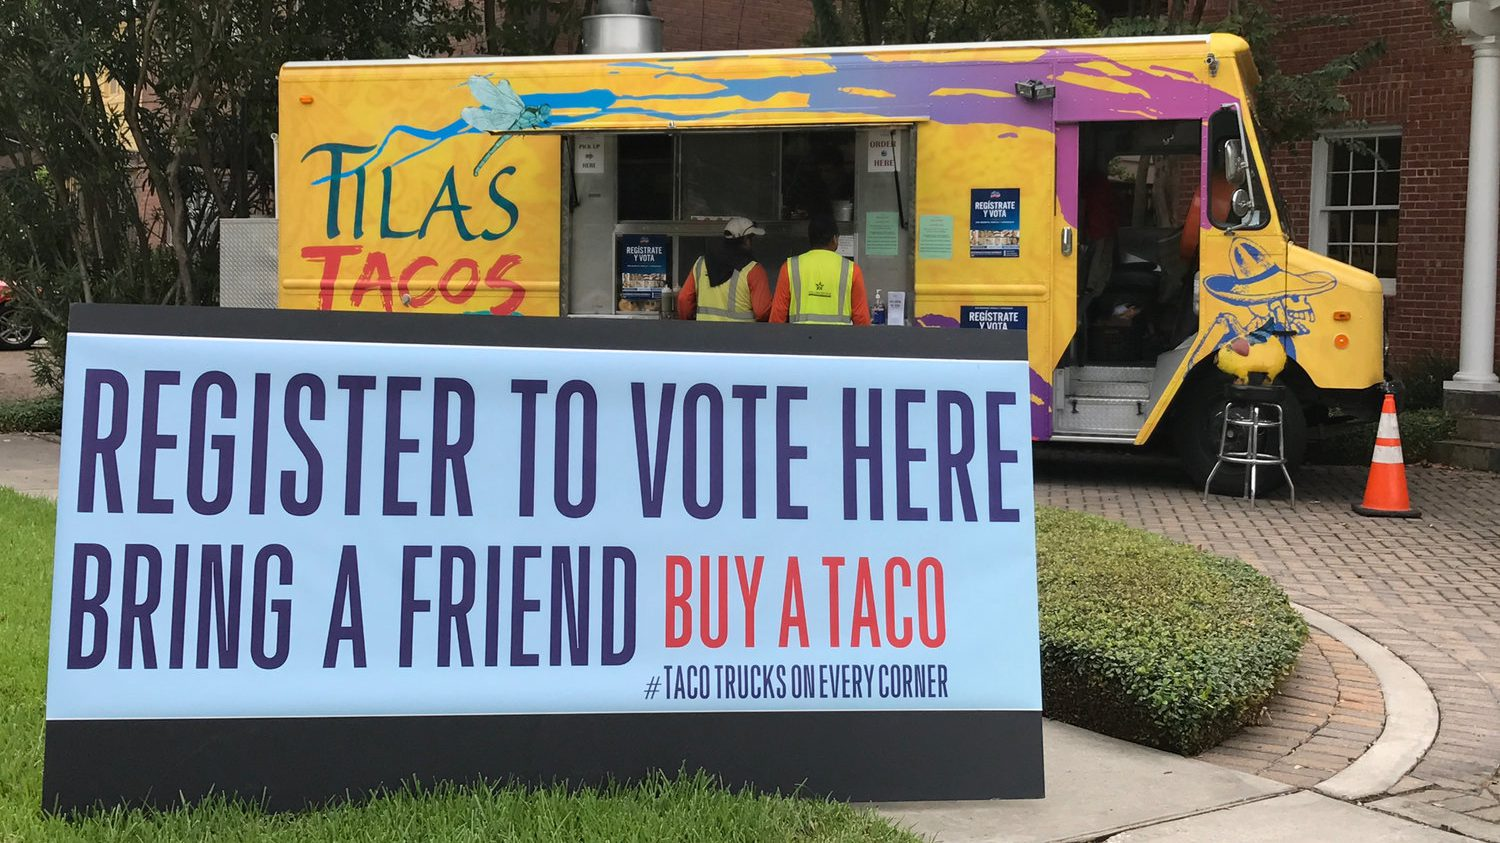 Taco-ing the vote.